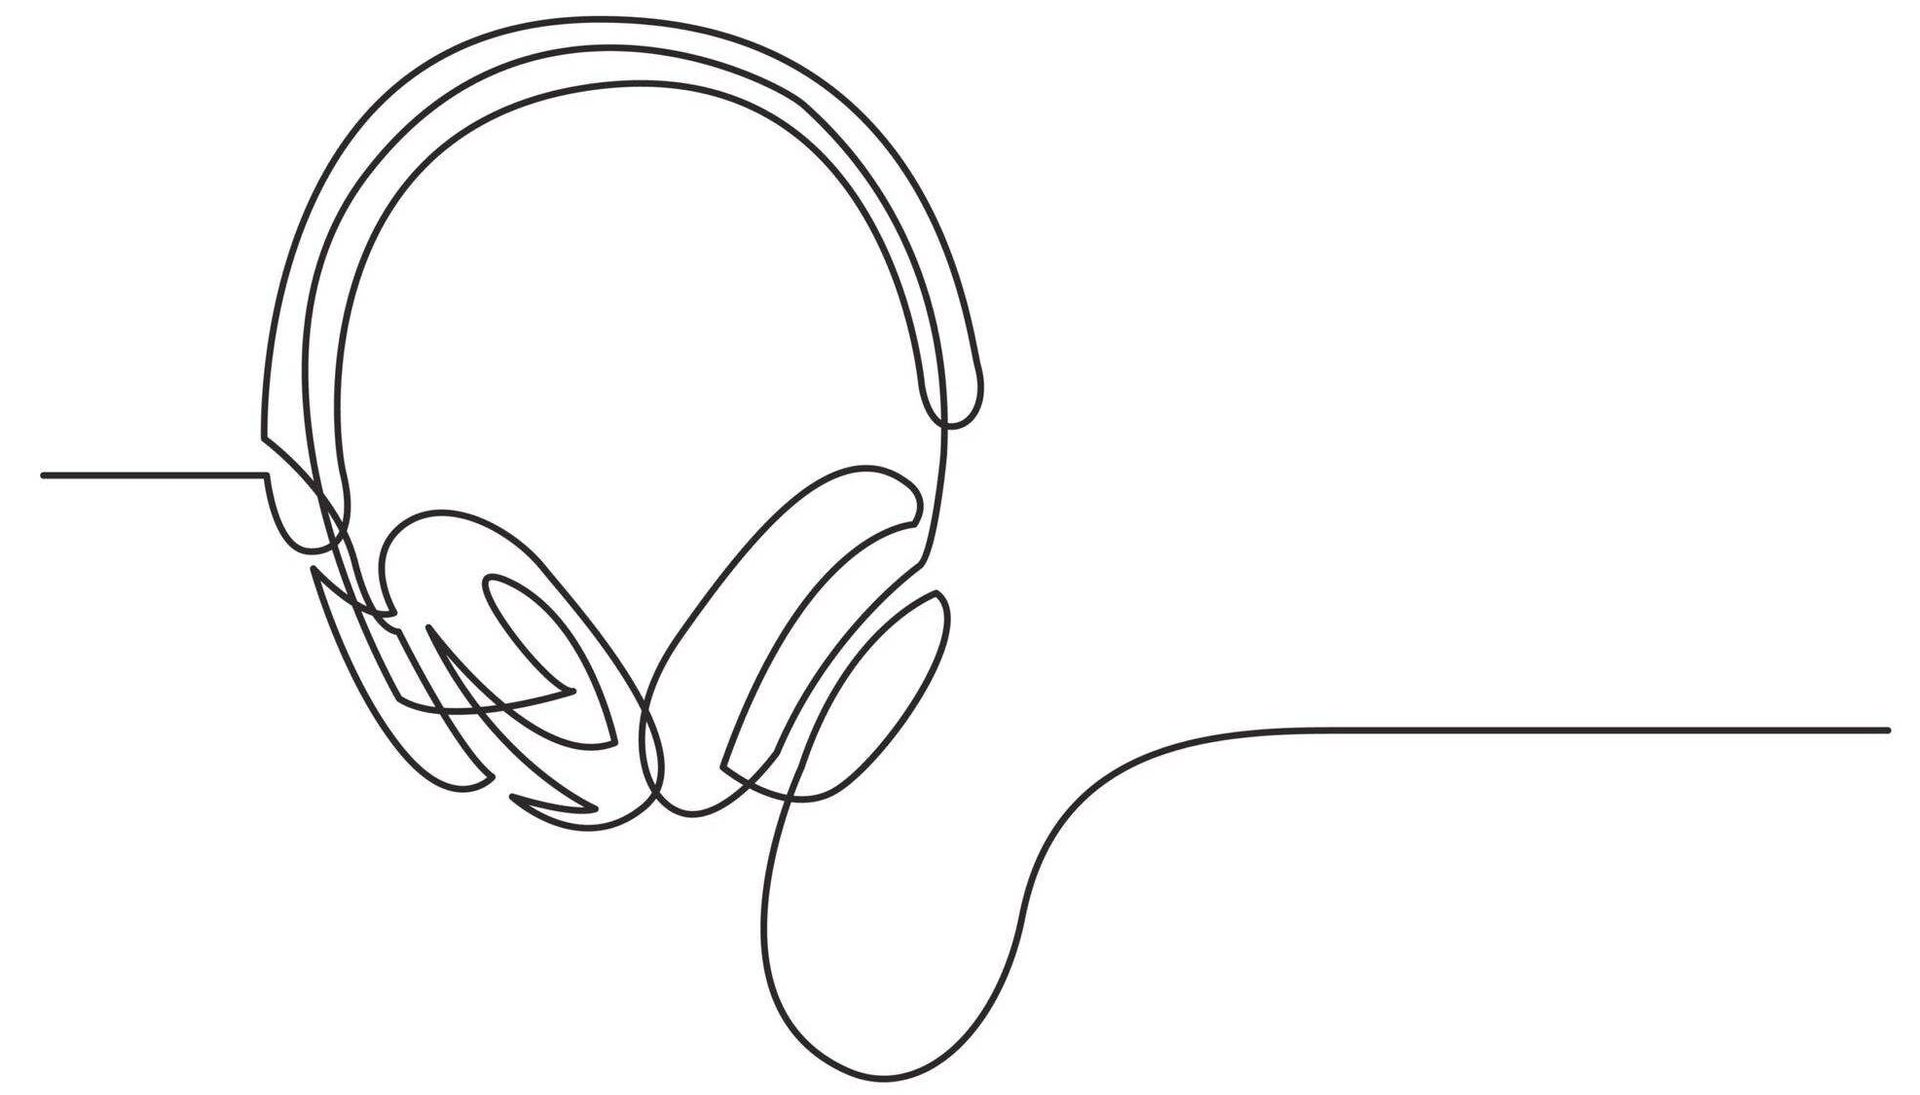 Line drawing of headphones, Rewire, Living, Mental Health Podcasts PBS